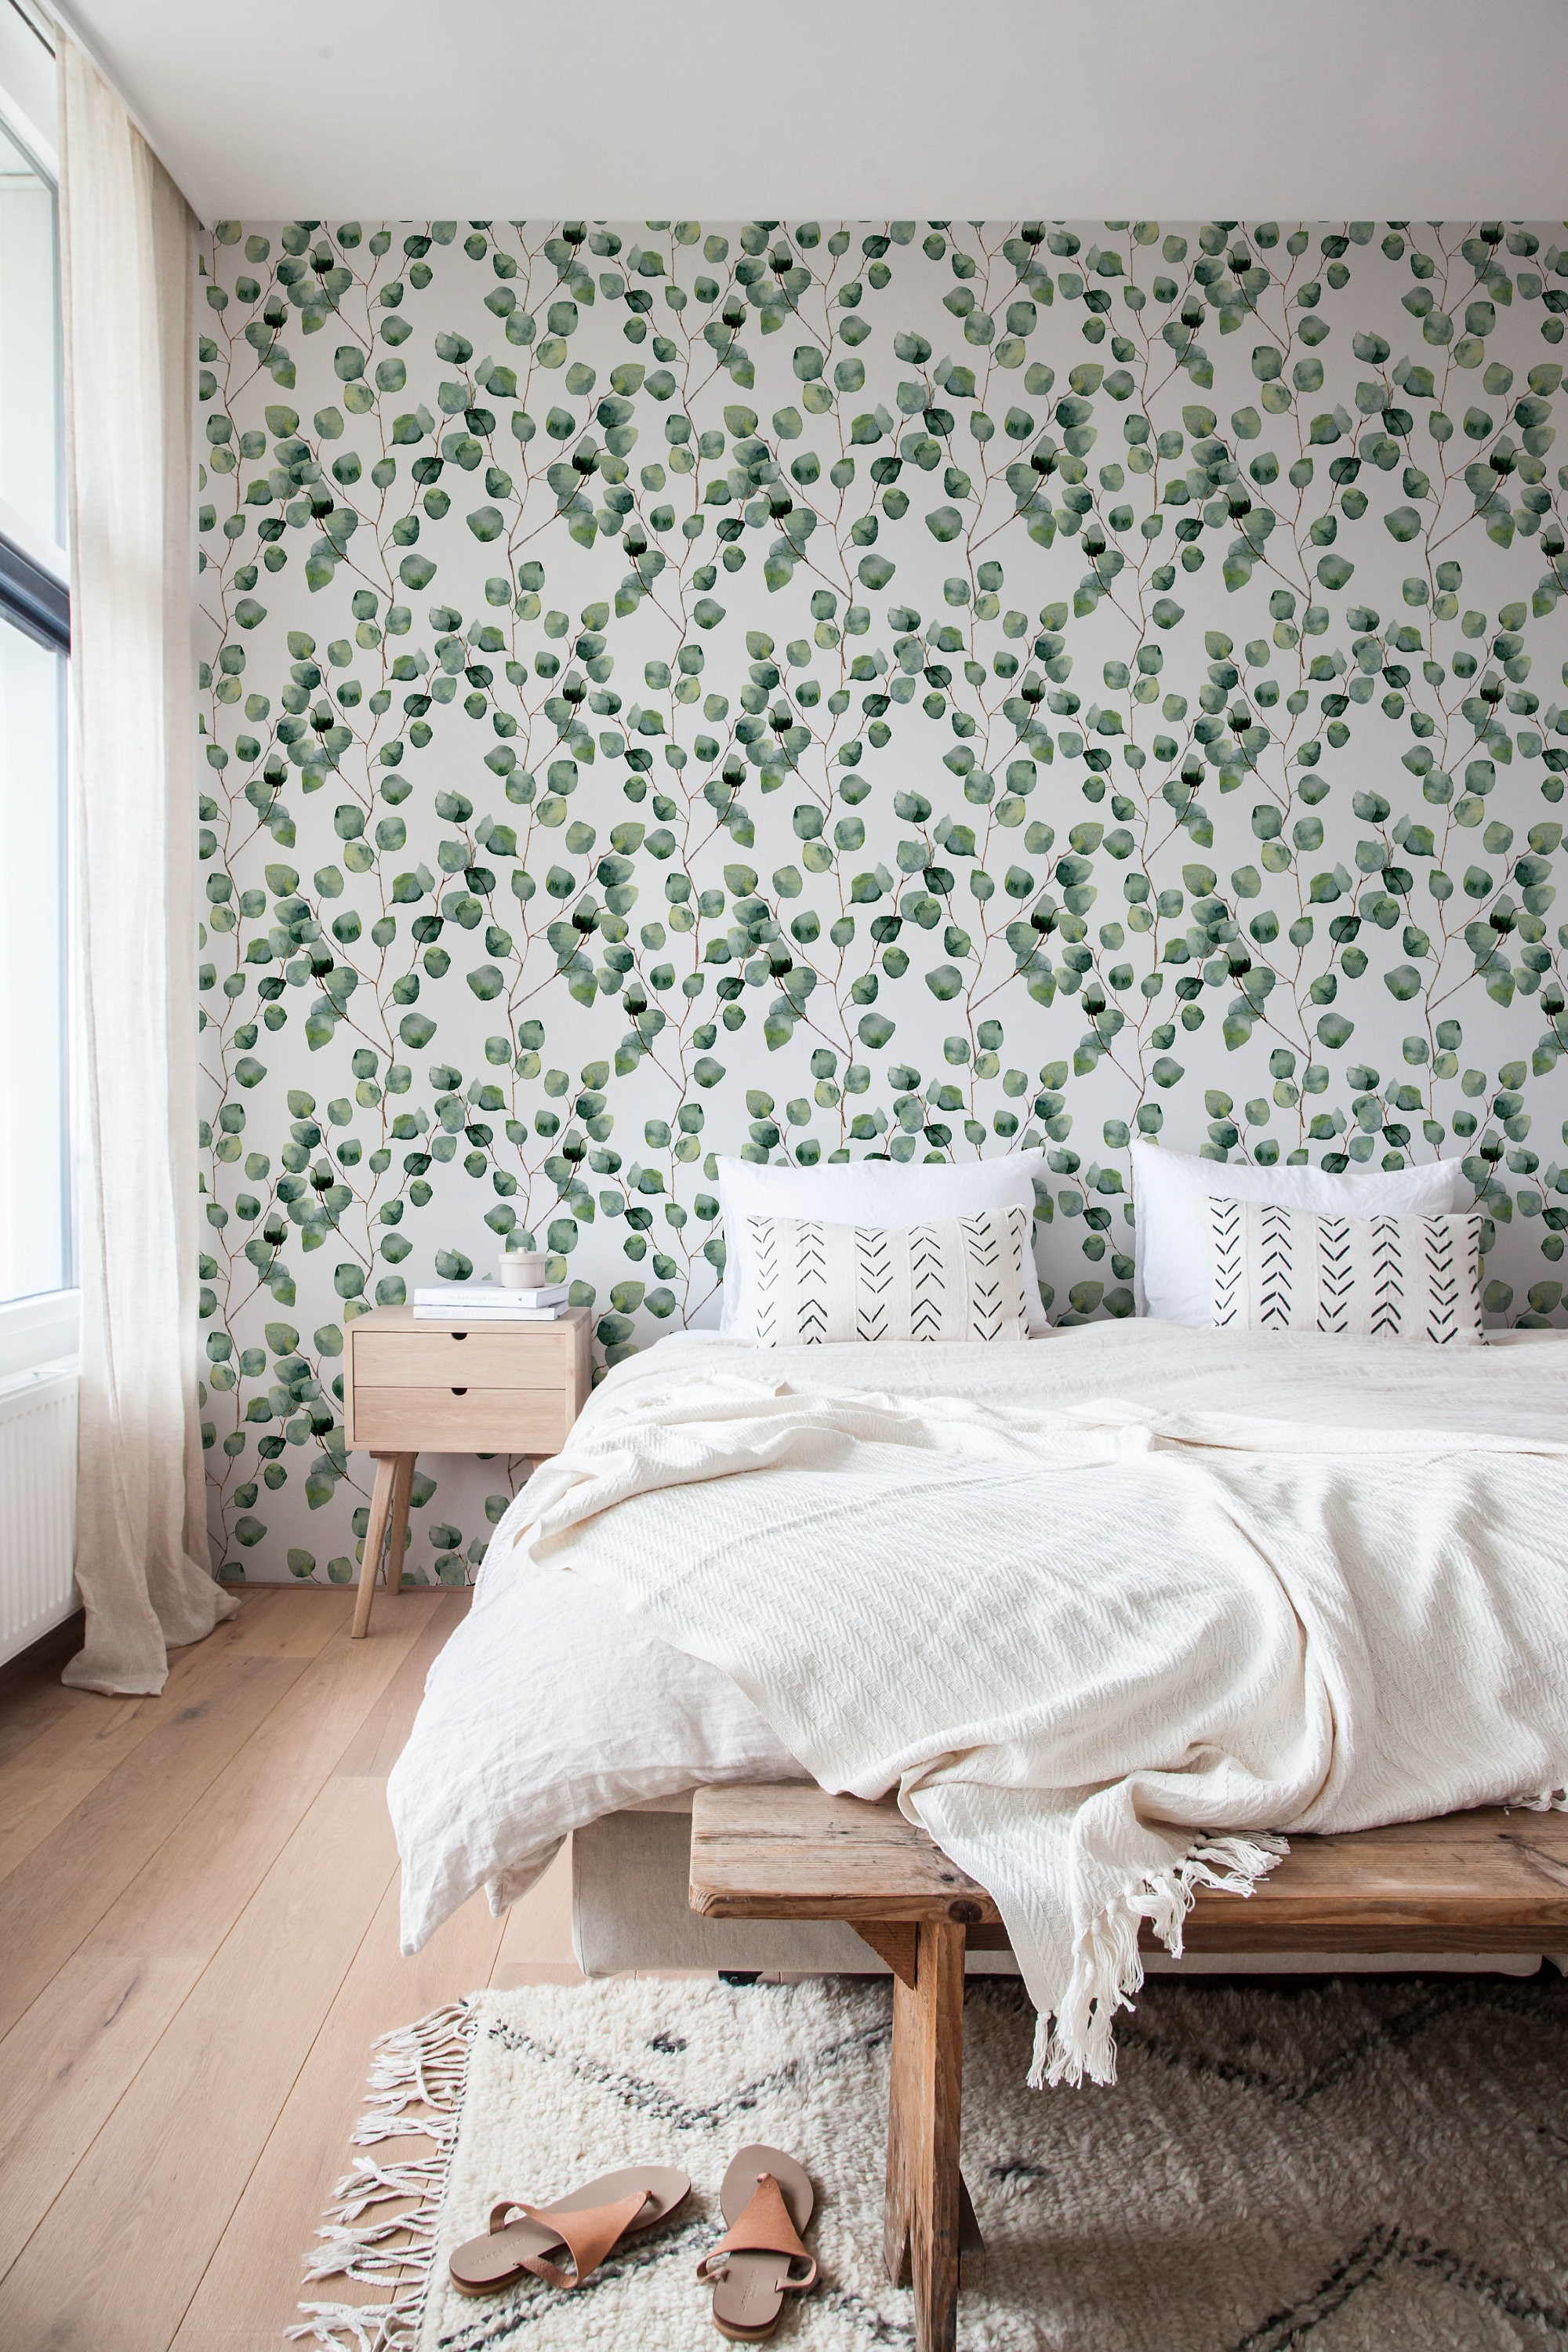 removable wallpaper cactus wallpaper peel and stick fabric